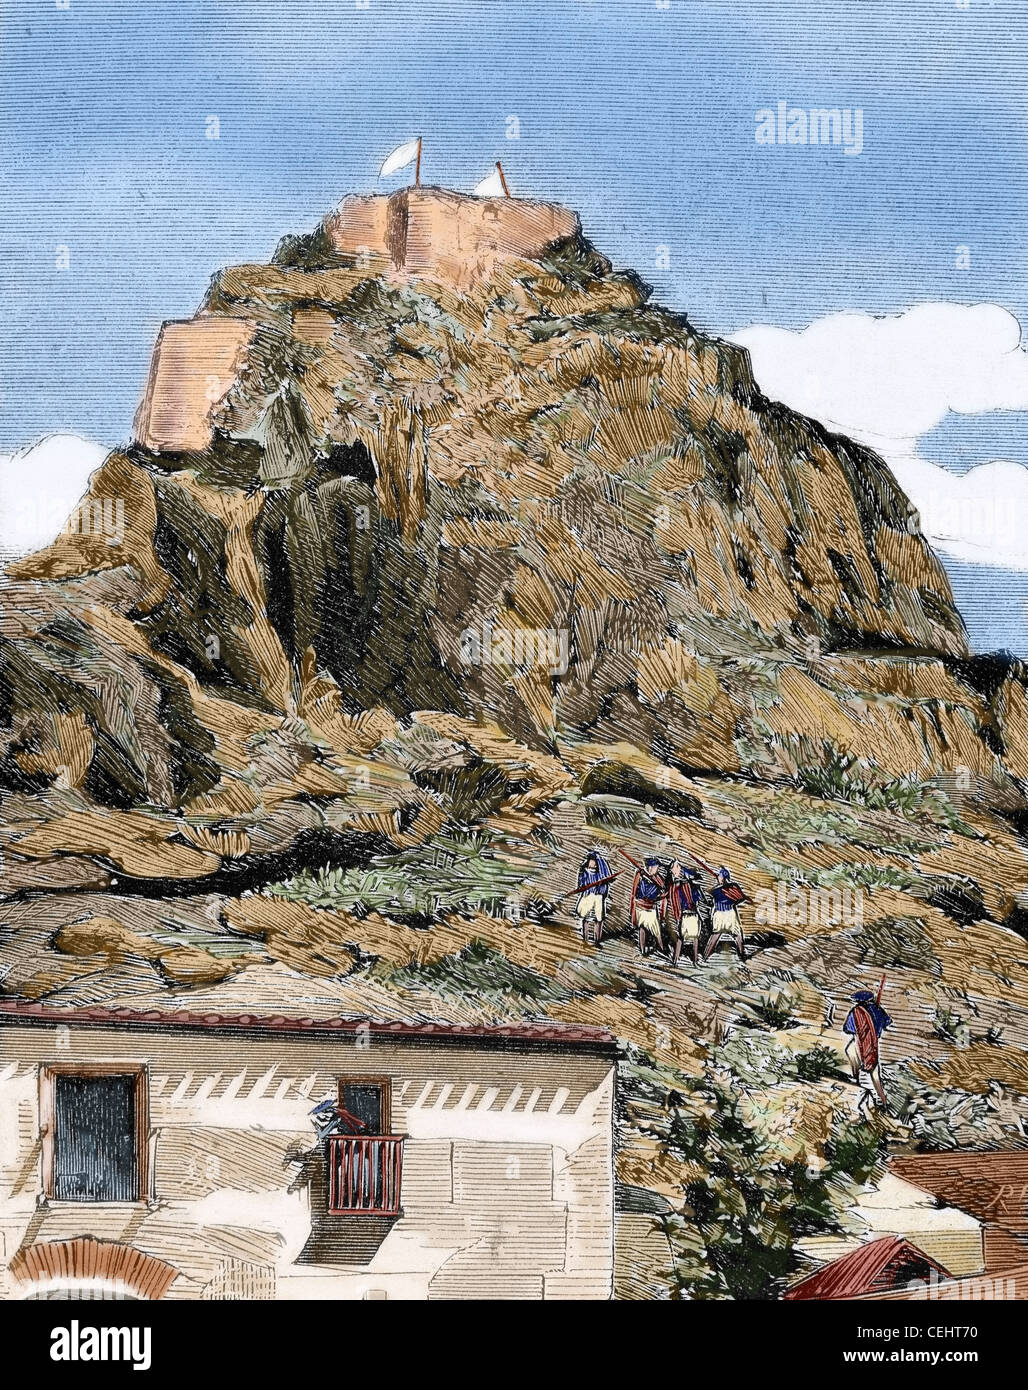 History of Spain. 19th century. Cantonal Revolution. Monteagudo (Murcia), center of the uprising. Engraving by Rico. Stock Photo